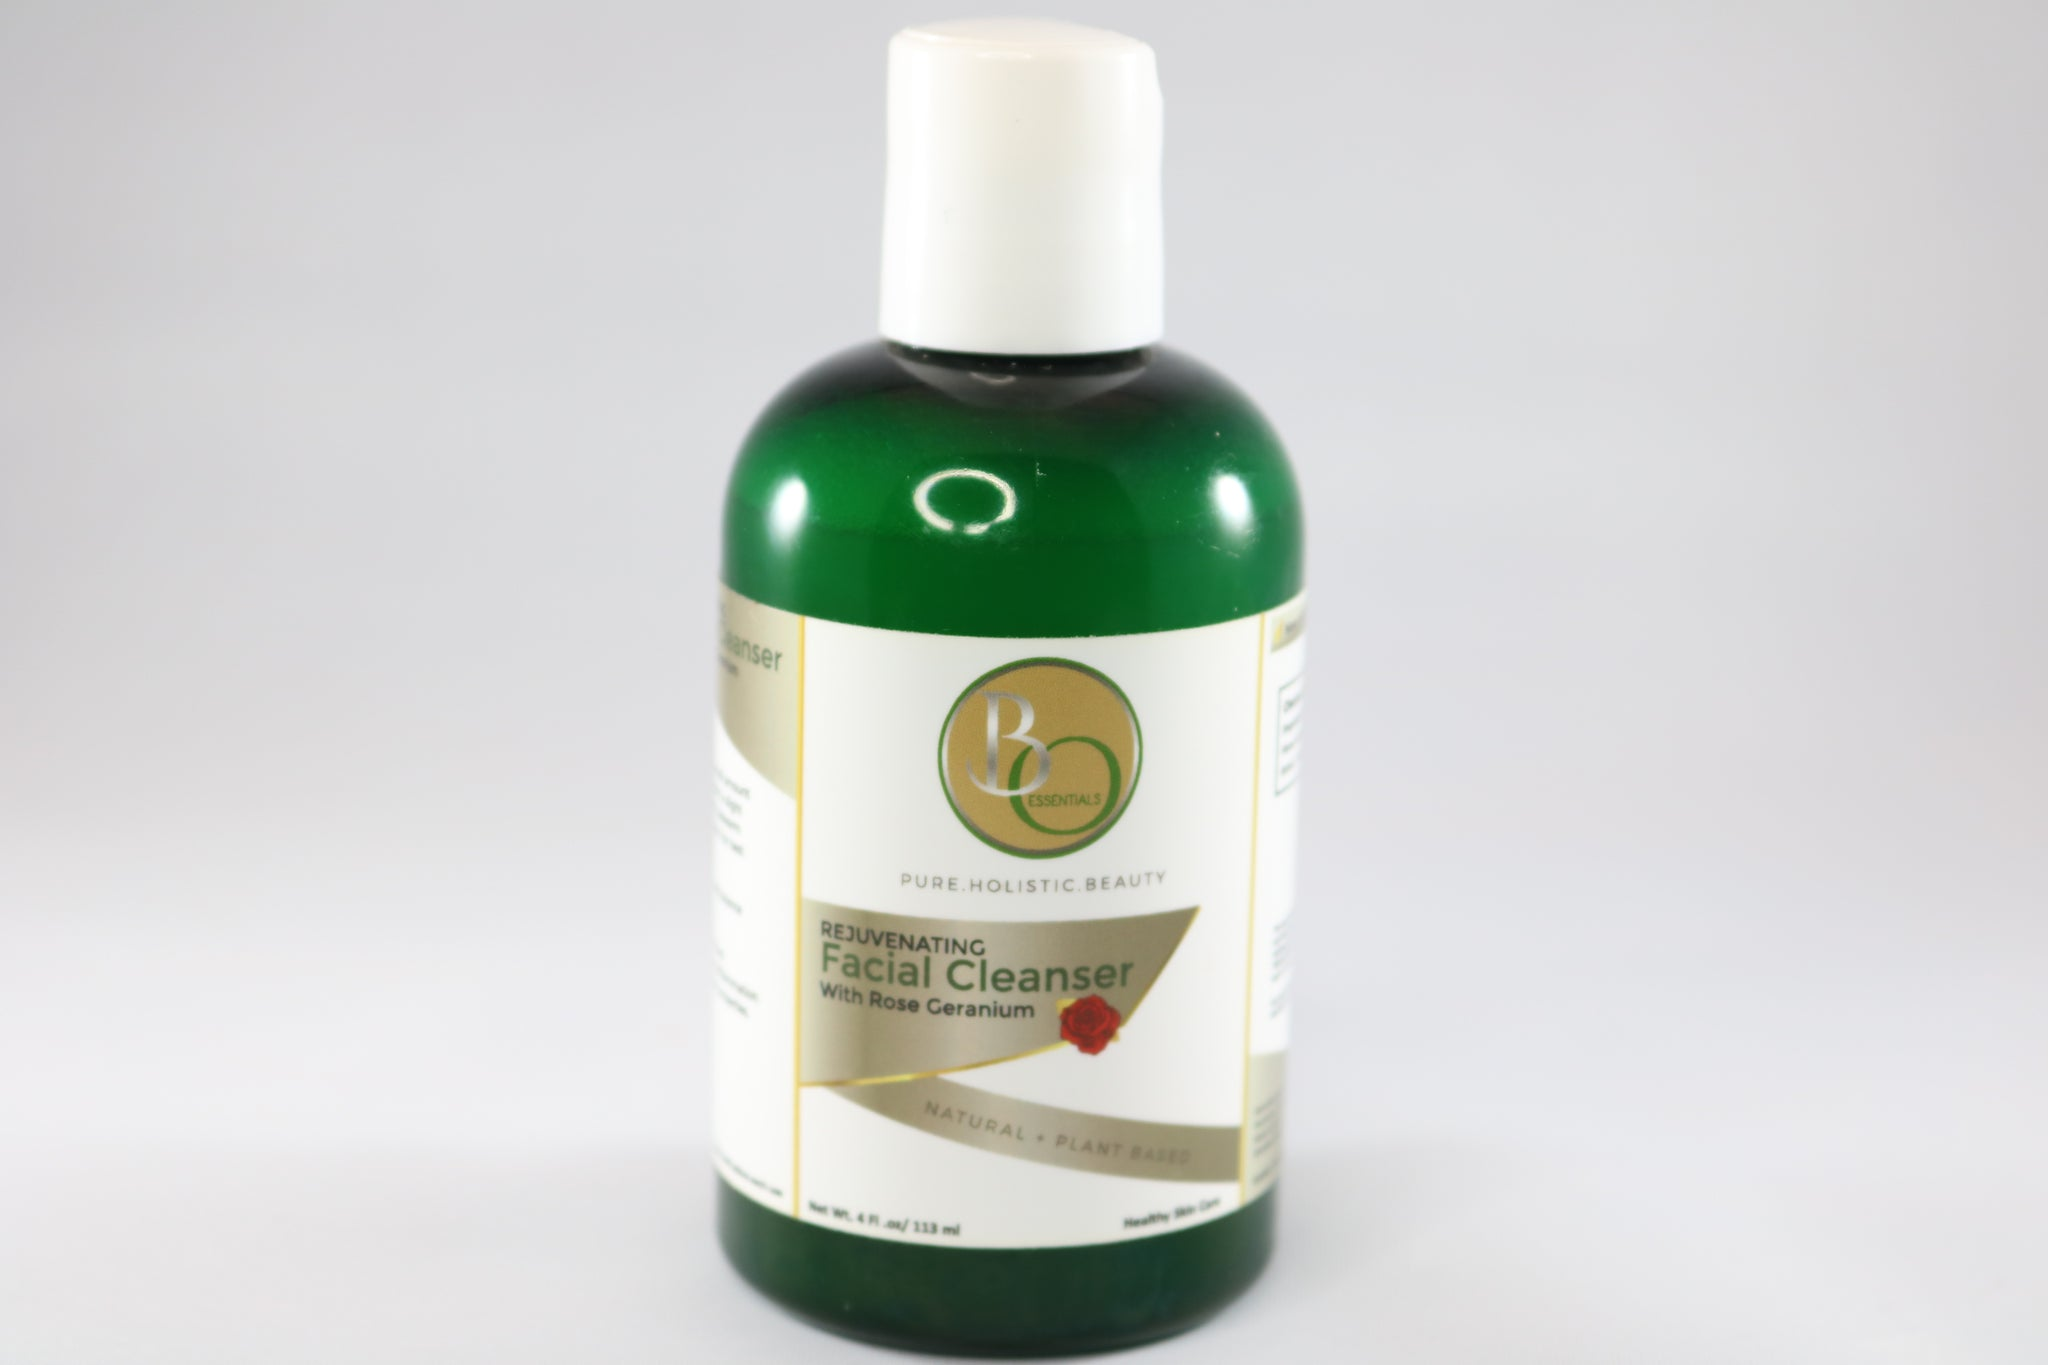 Rejuvenating Facial Cleanser Rose Geranium